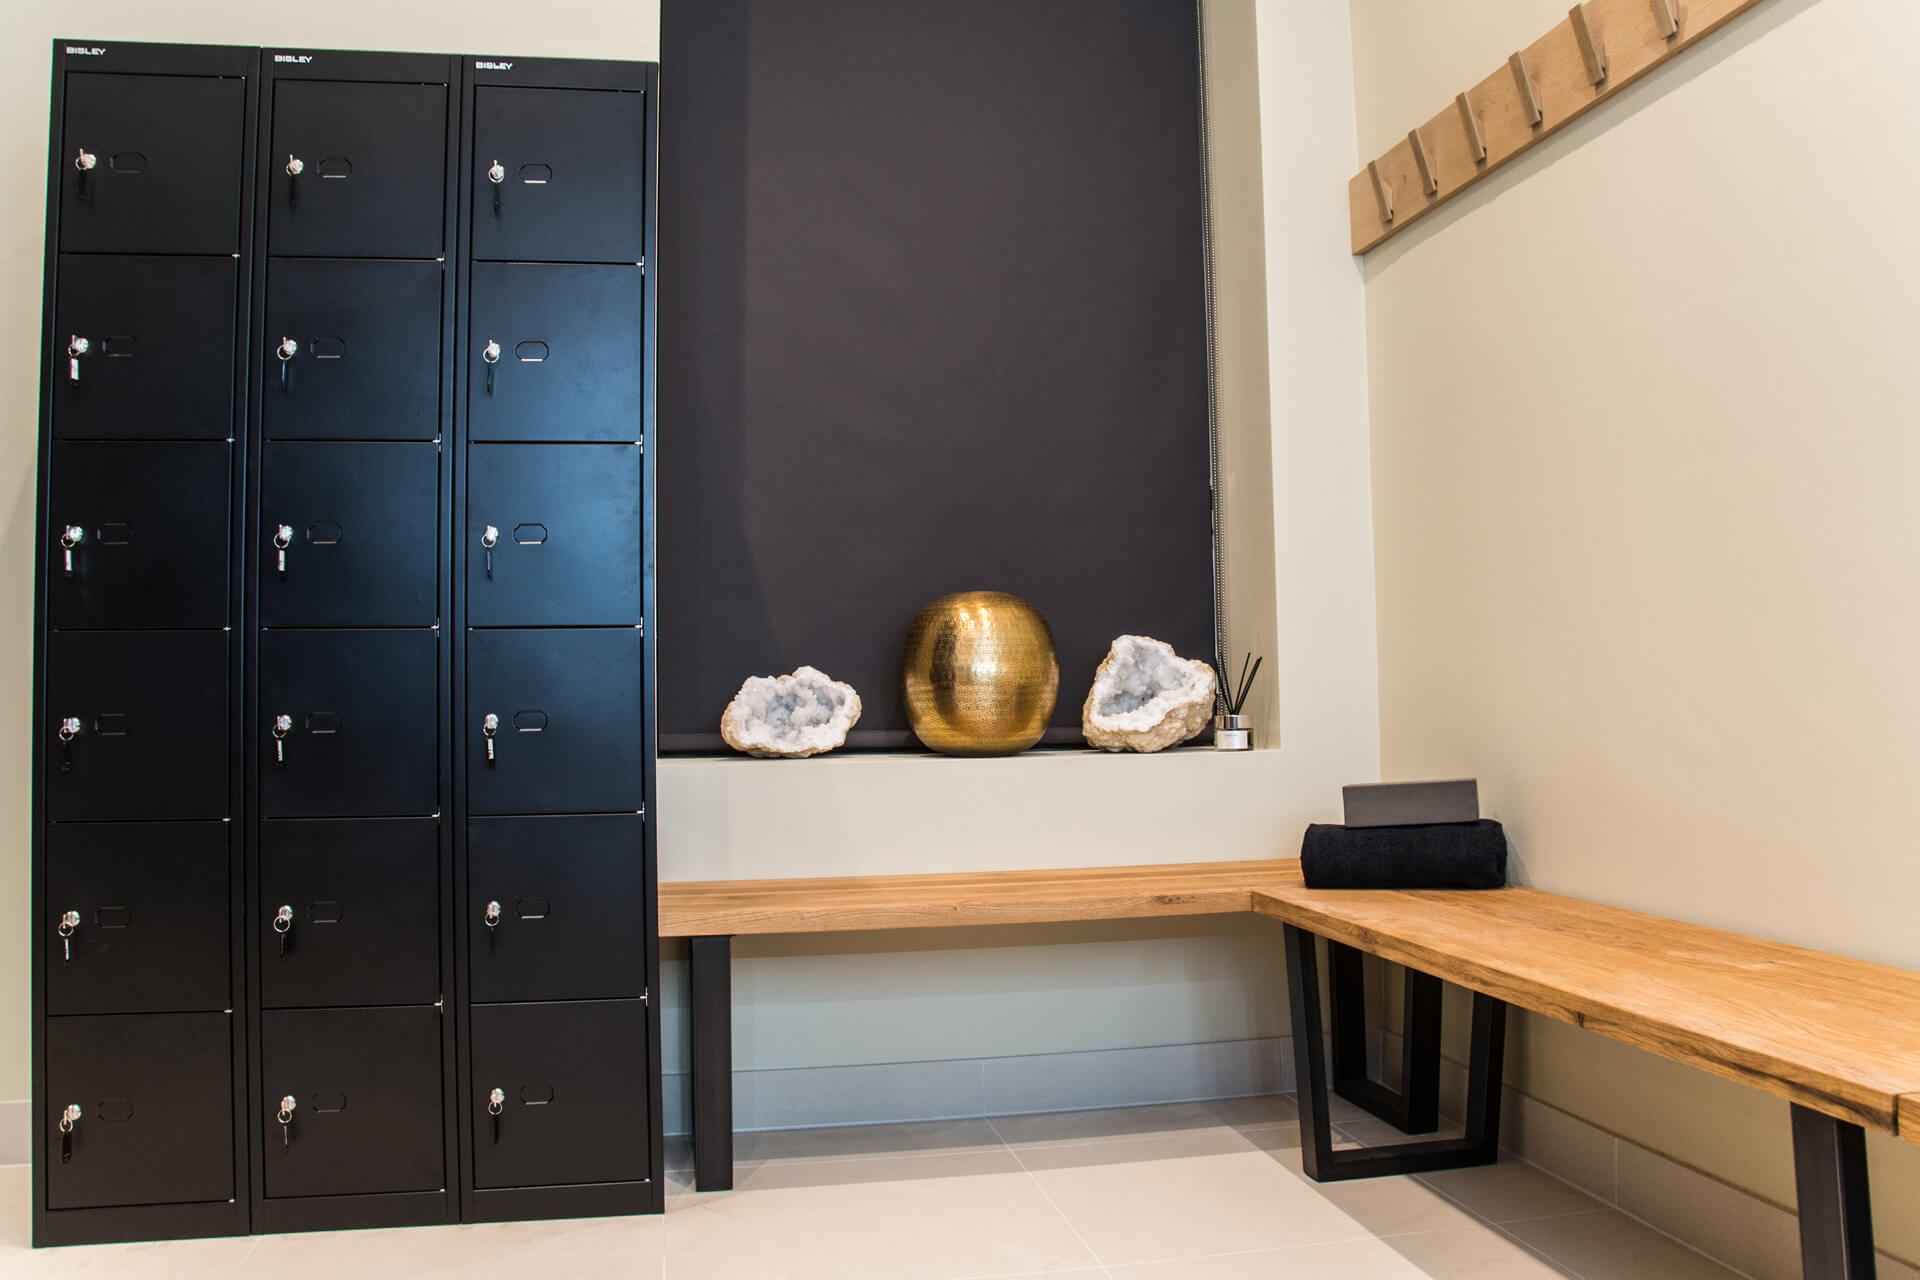 Be Yoga Space changing room bench